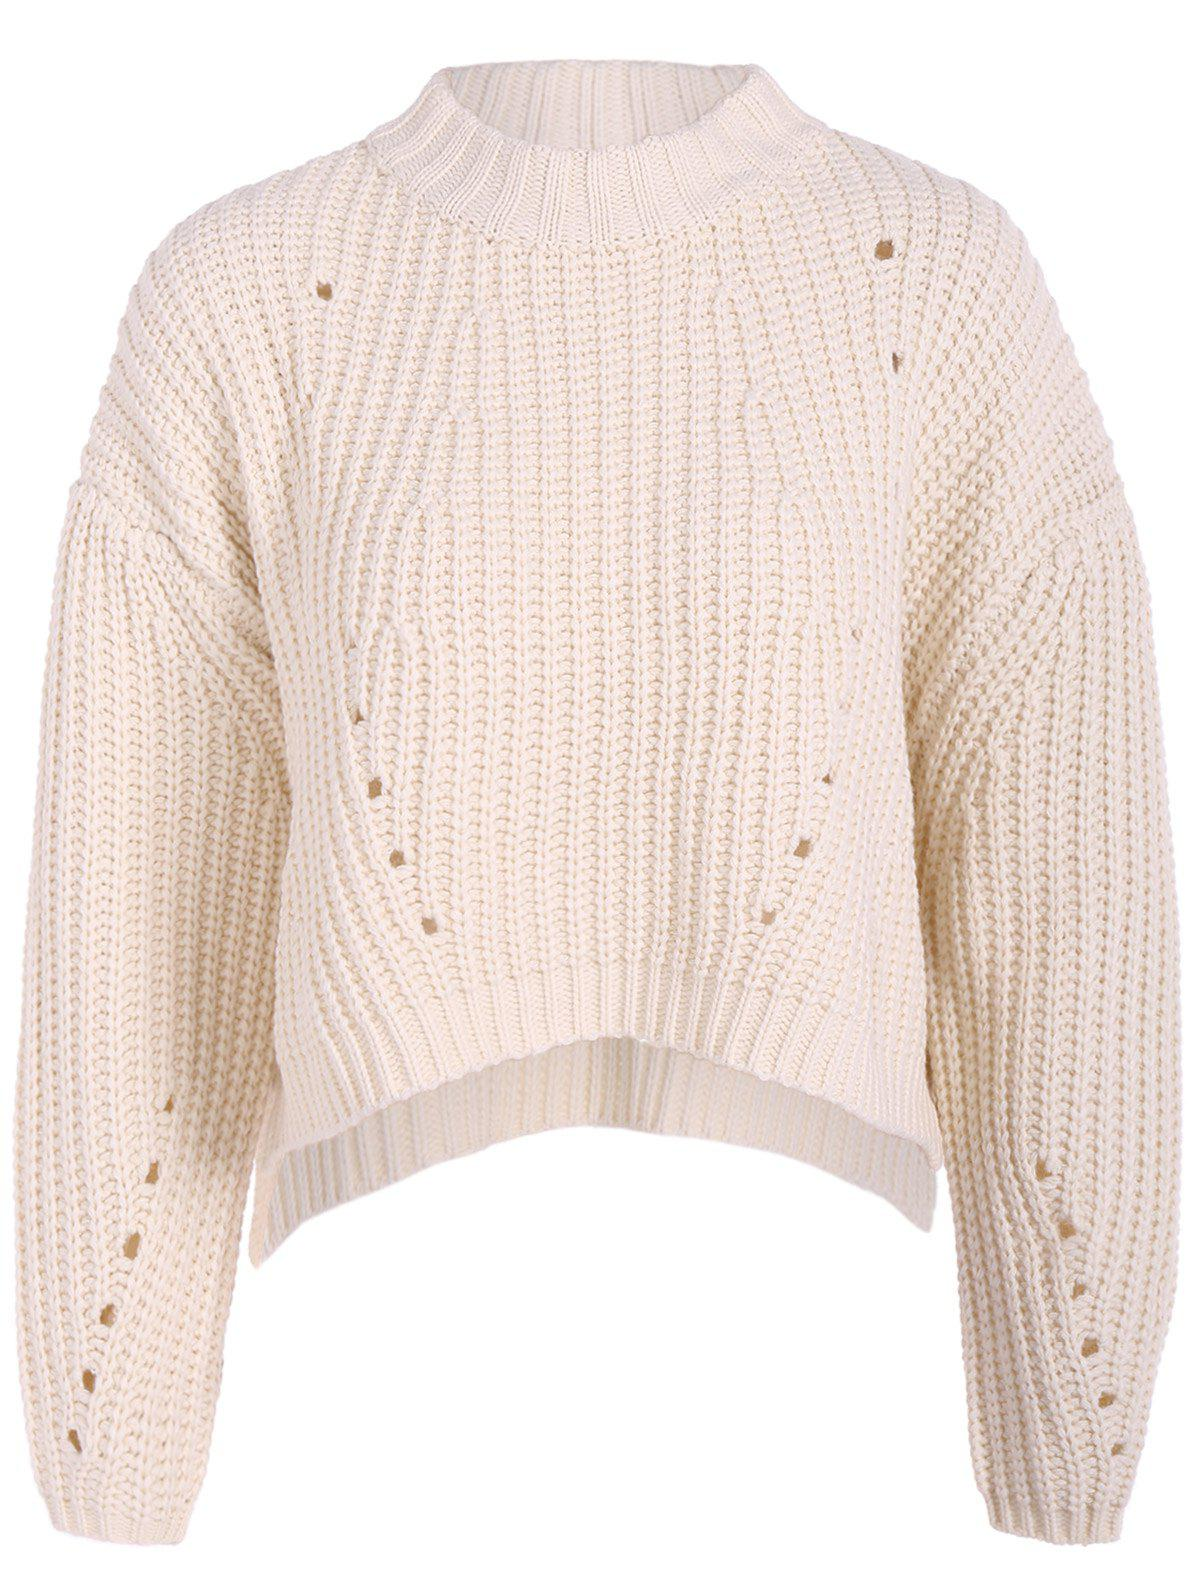 Round Neck High Low Pullover KnitwearWOMEN<br><br>Size: ONE SIZE; Color: WHITE; Type: Pullovers; Material: Polyester; Sleeve Length: Full; Collar: Round Neck; Style: Casual; Pattern Type: Solid; Season: Fall,Spring,Winter; Weight: 0.470kg; Package Contents: 1 x Sweater;